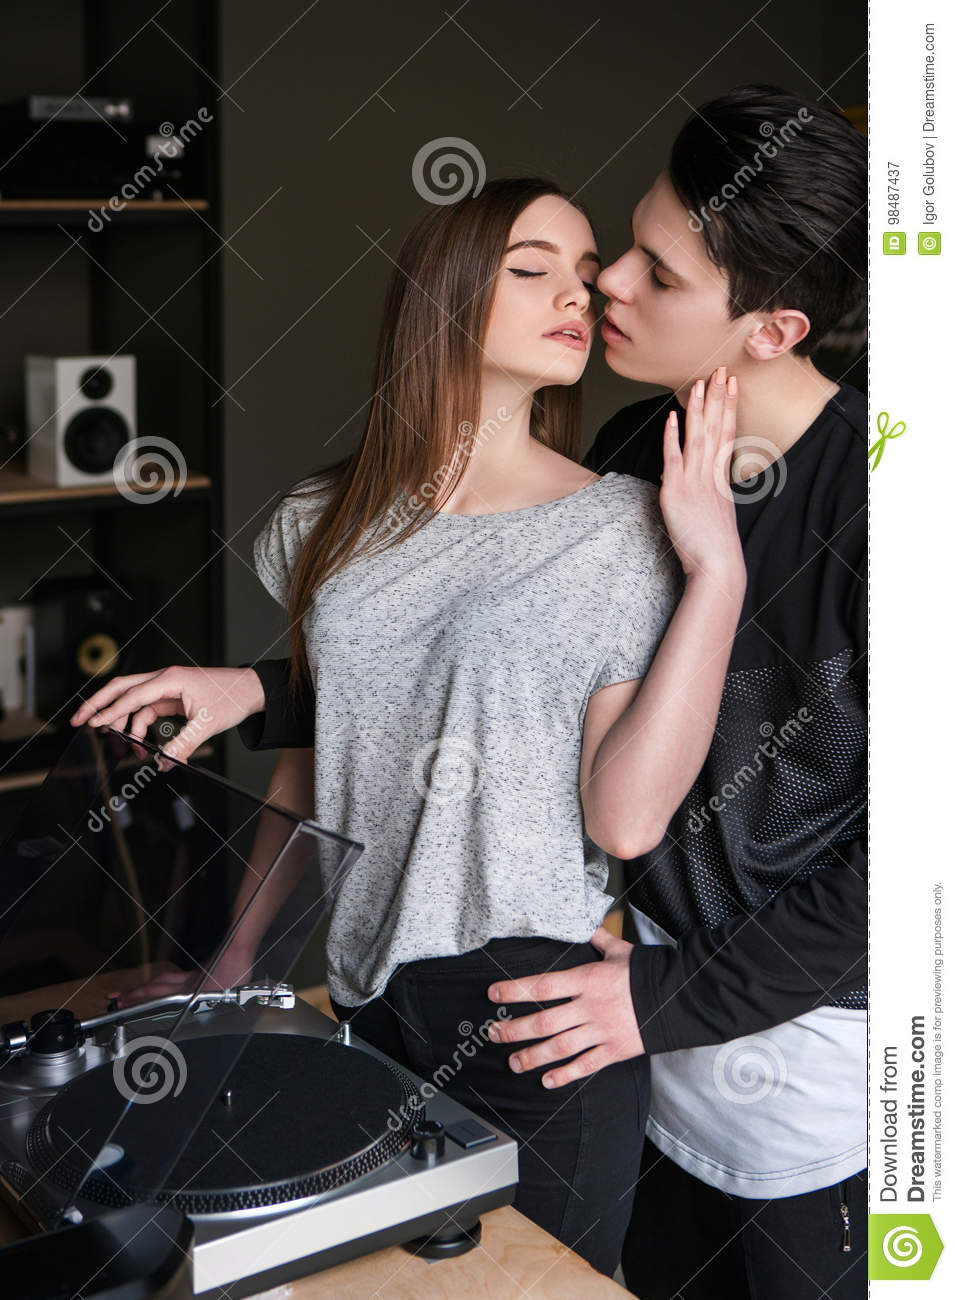 Passion in inappropriate place. Seductive couple